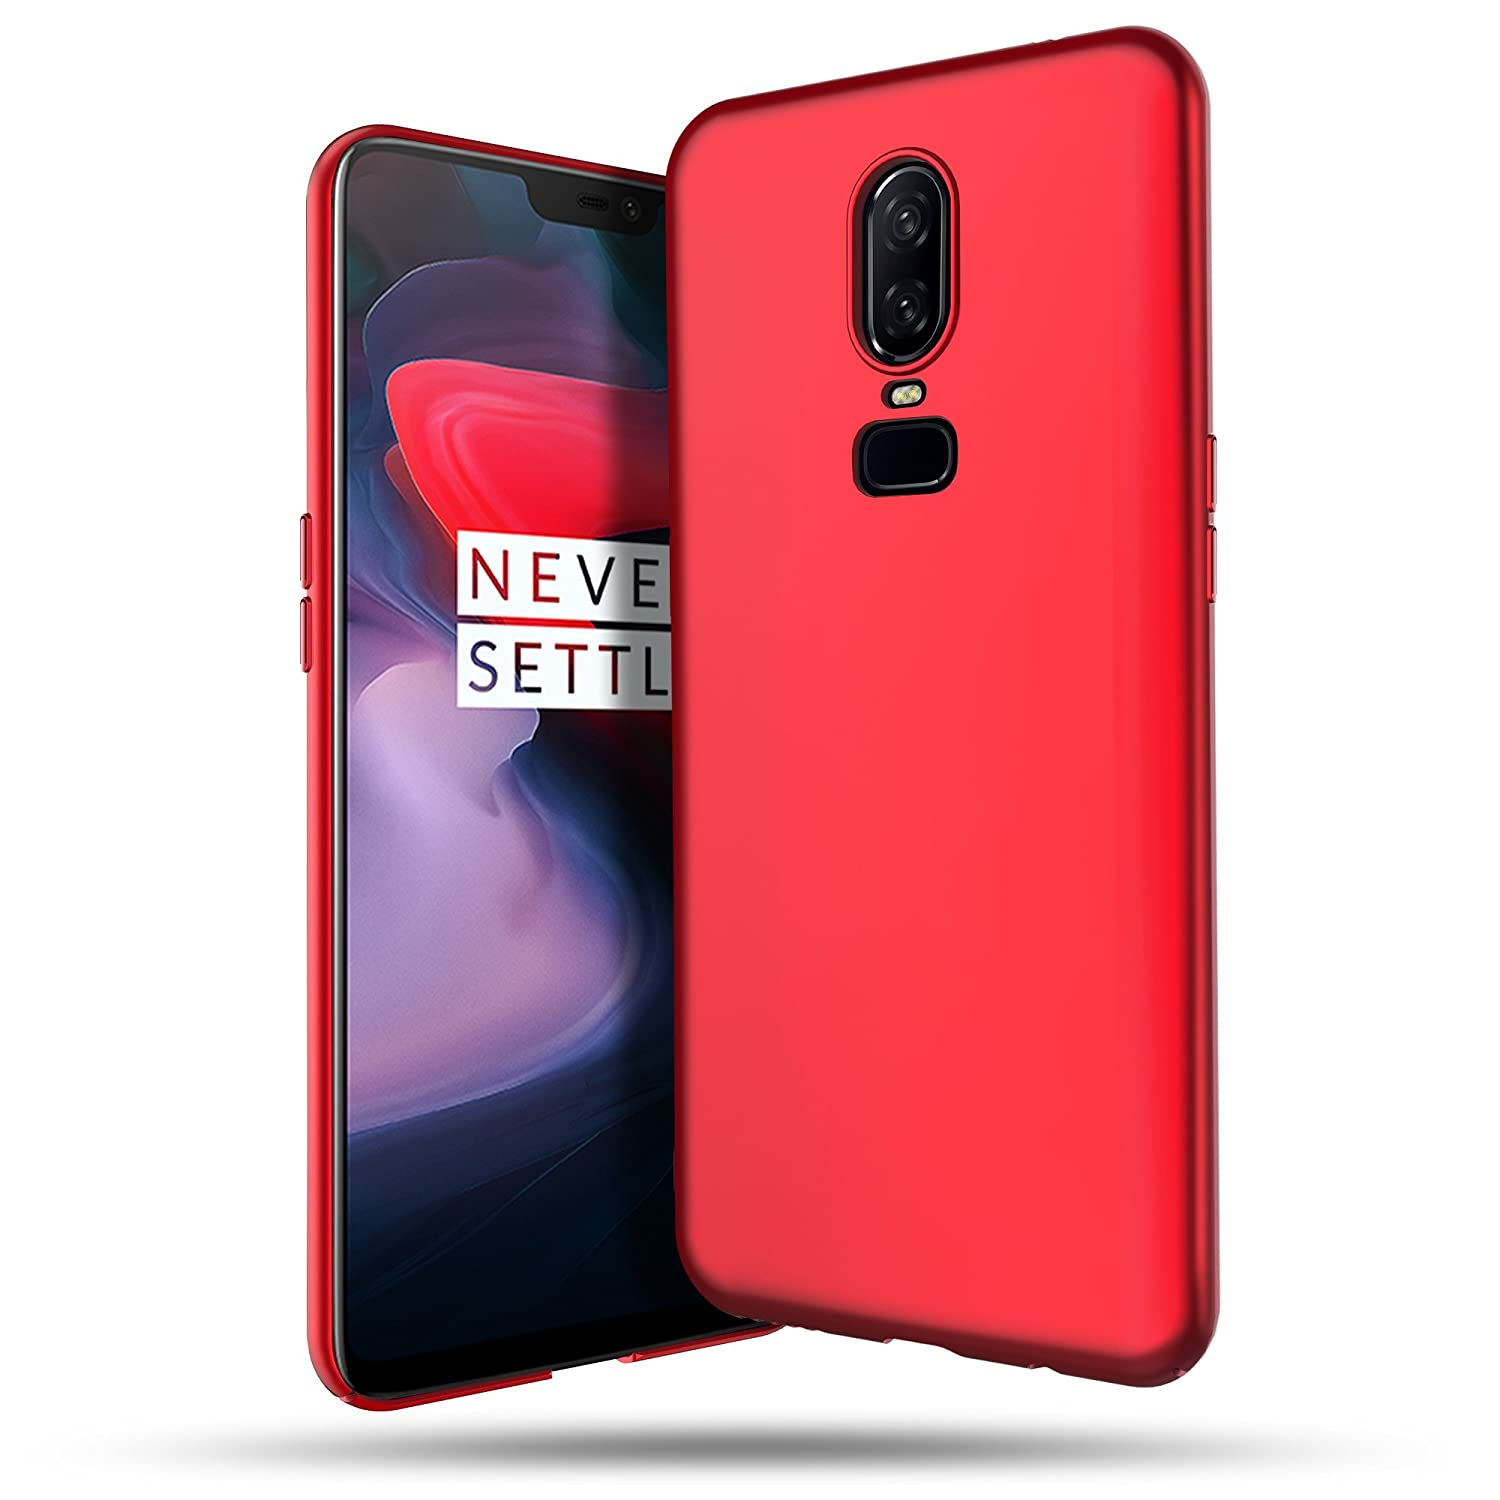 info for 328e2 ac19f OnePlus 6 Case, B BELK Ultra Slim Thin Snug-Fit Scratch Resistant Premium  PC Hard Protective Cover with Matte Finish Coating for OnePlus 6, Red